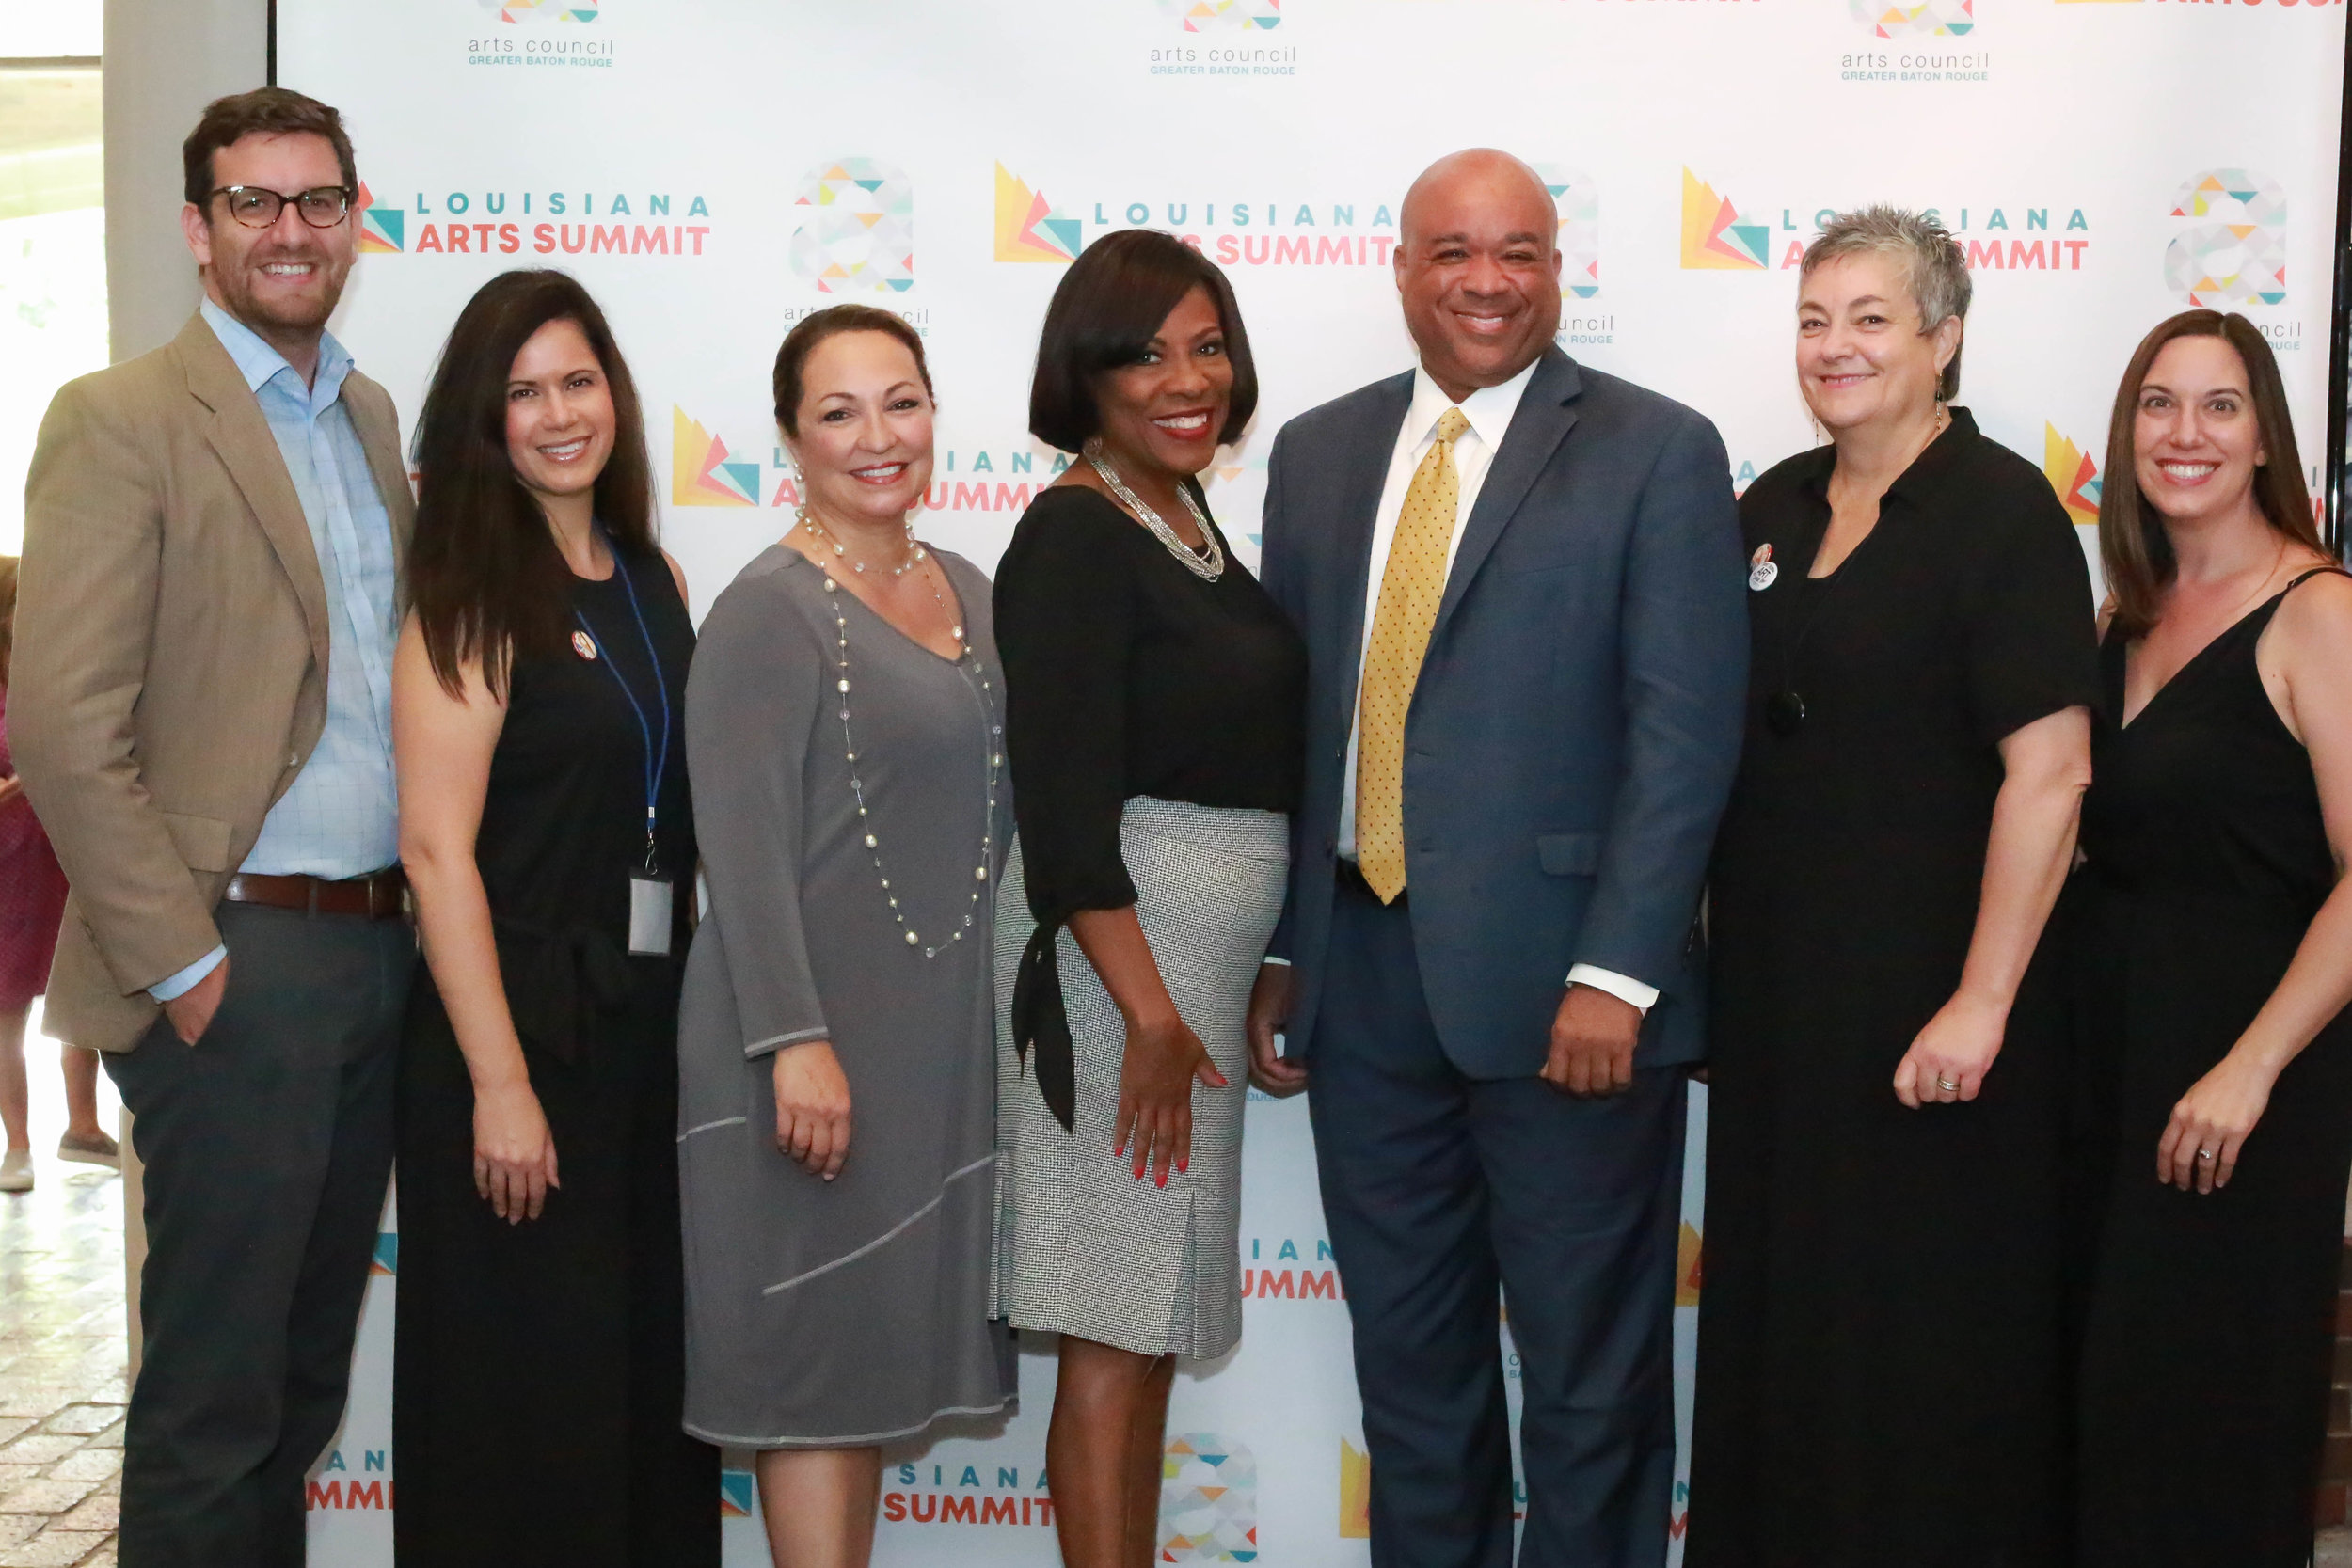 Sam Oliver (Acadiana Center for the Arts in Lafayette), Carrie Broussard (The Office of Cultural Development), Renee Chatelain, (Arts Council of Greater Baton Rouge), Mayor-President Sharon Weston Broome, Blaine Grimes (Campus Federal Credit Union), Cheryl Castille (Louisiana Division of the Arts)